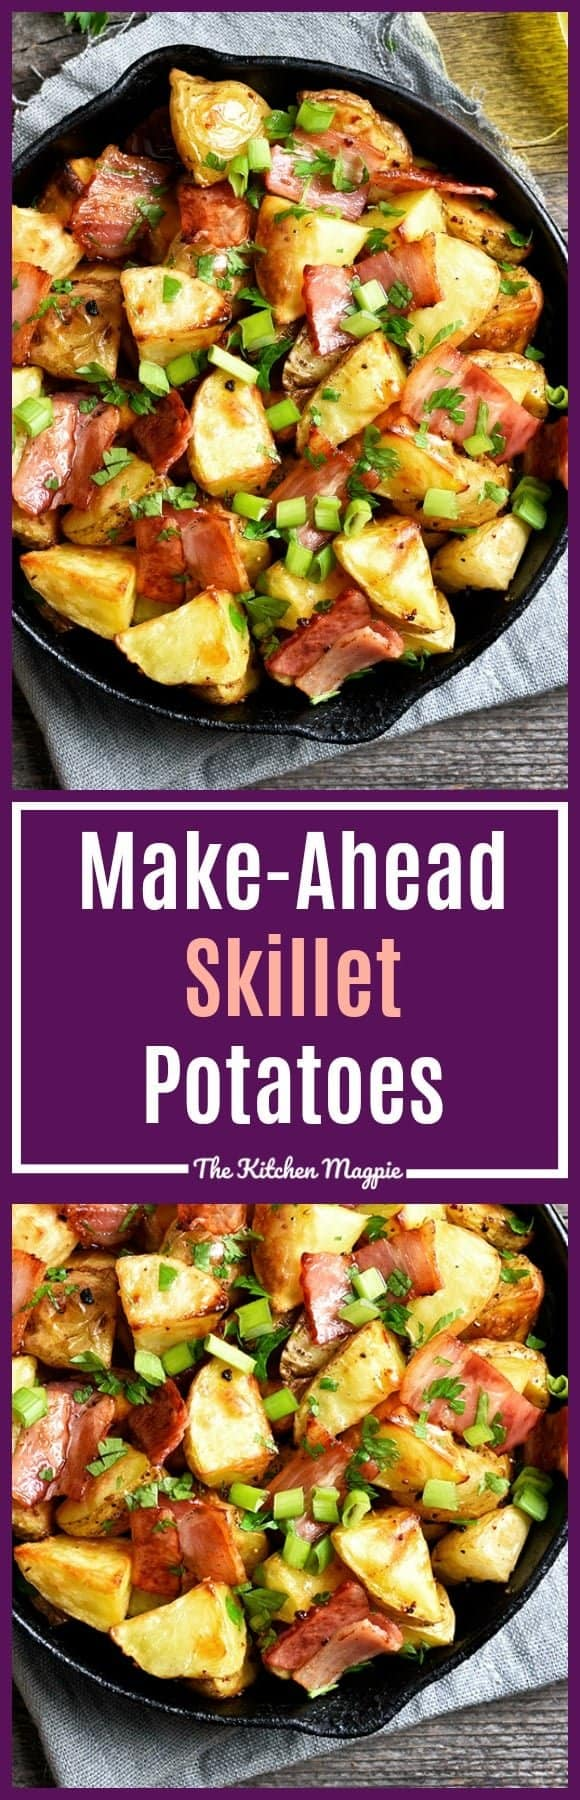 Make-Ahead Skillet potatoes! This is a really easy dish to prep before the holidays. You pre-cook the potatoes and can dice up everything to go in it. Then simply assemble and crisp the potatoes in the oven when you are ready! Recipe from @kitchenmagpie #recipes #skillet #breakfast